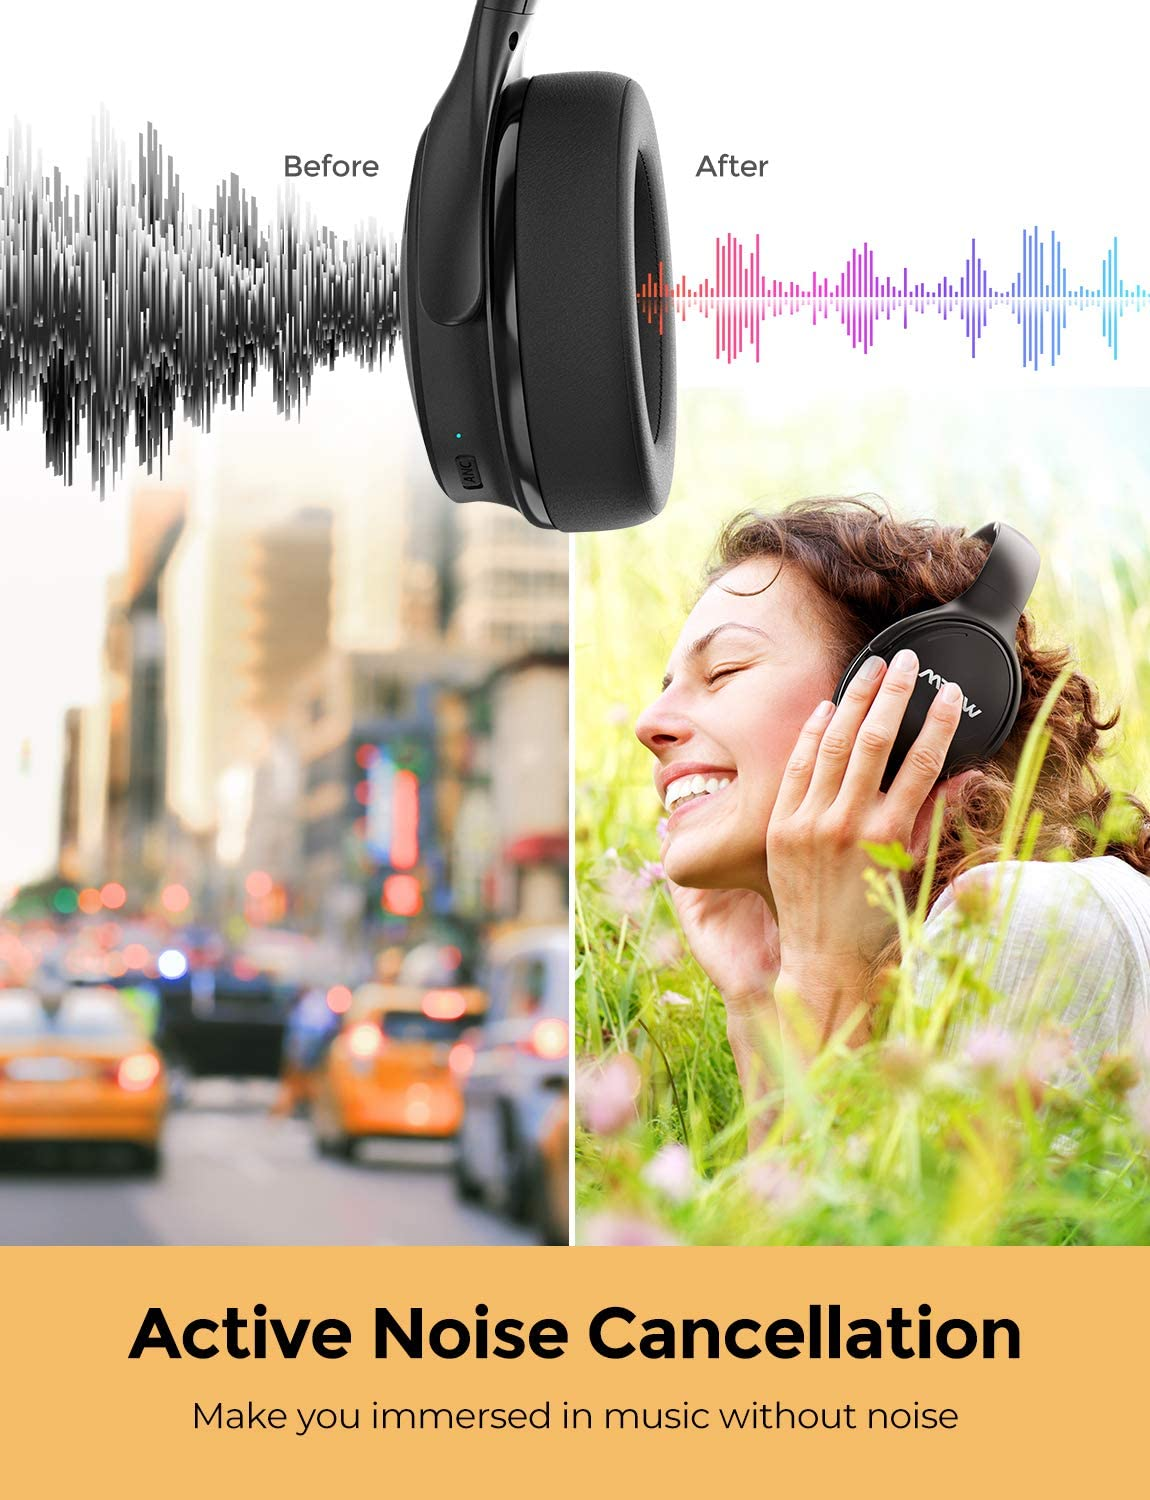 Mpow H19 IPO Active Noise Cancelling Bluetooth Headphones 30H Playtime for PC//Cellphones Memory-Protein Earpads Bluetooth 5.0 Headphones with CVC 8.0 Mic Hi-Fi Stereo Wireless Headphones with Rapid Charge